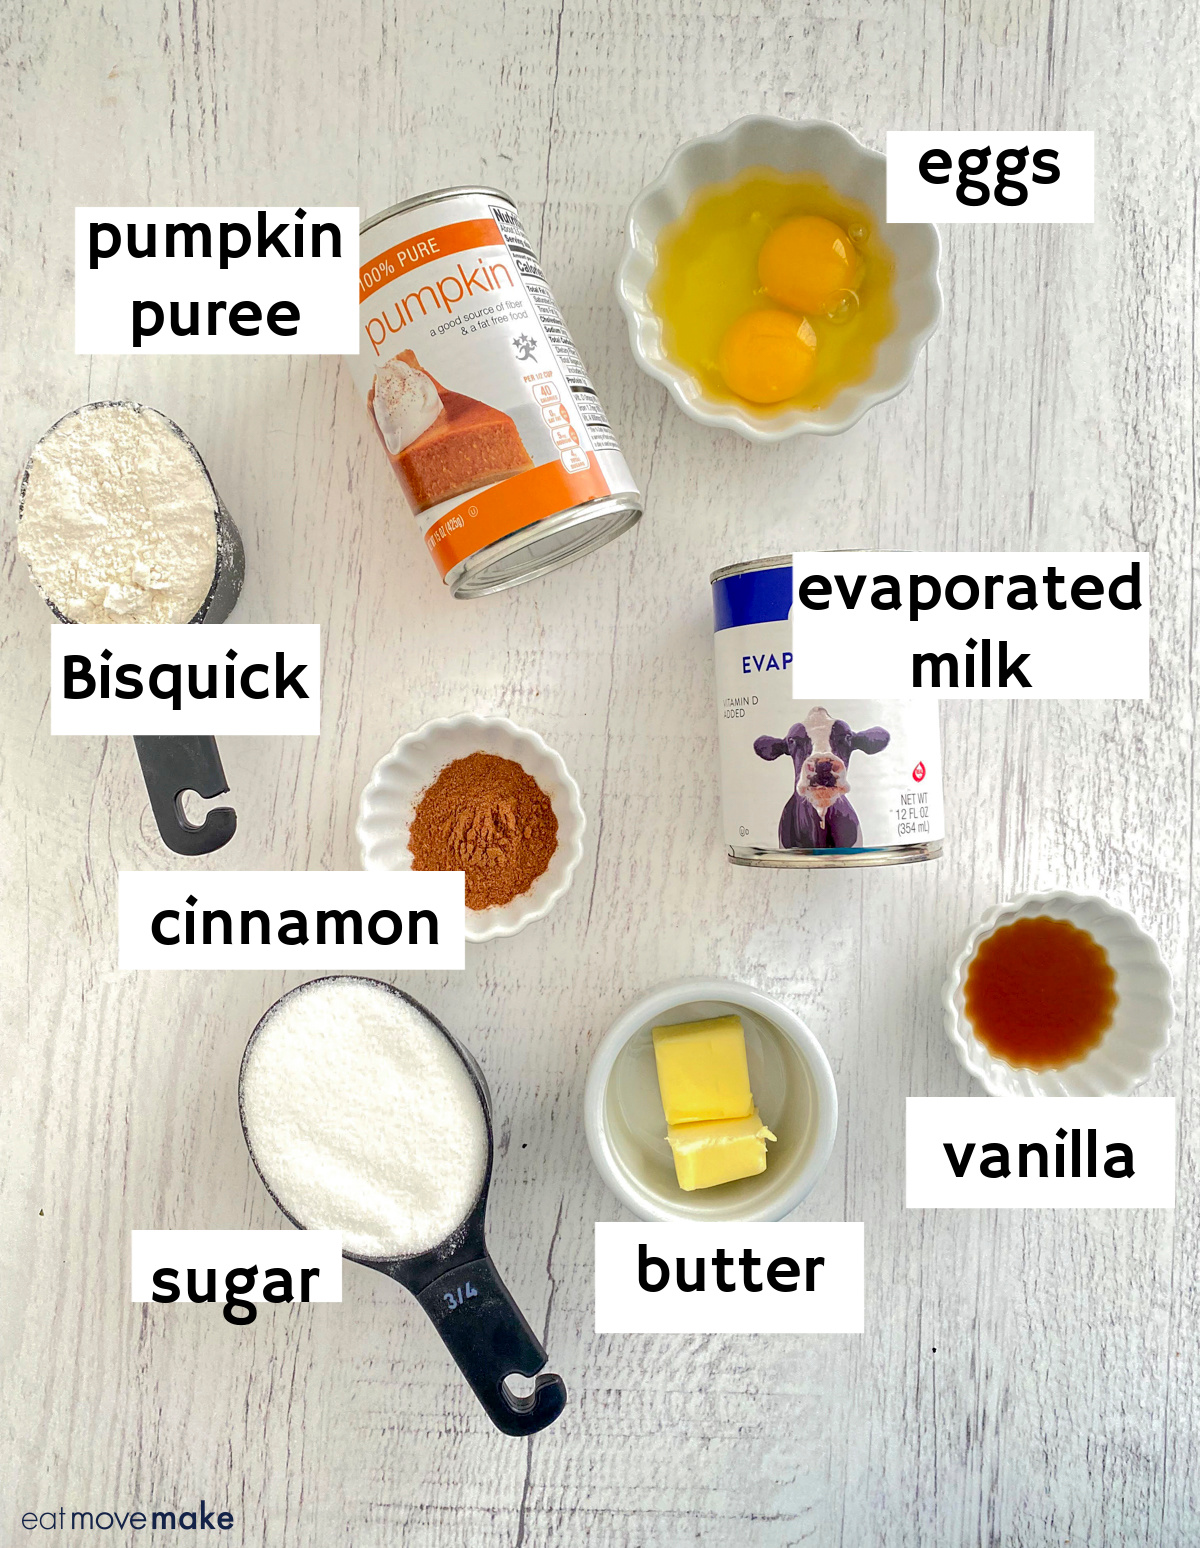 labeled ingredients for impossible pumpkin pie with Bisquick